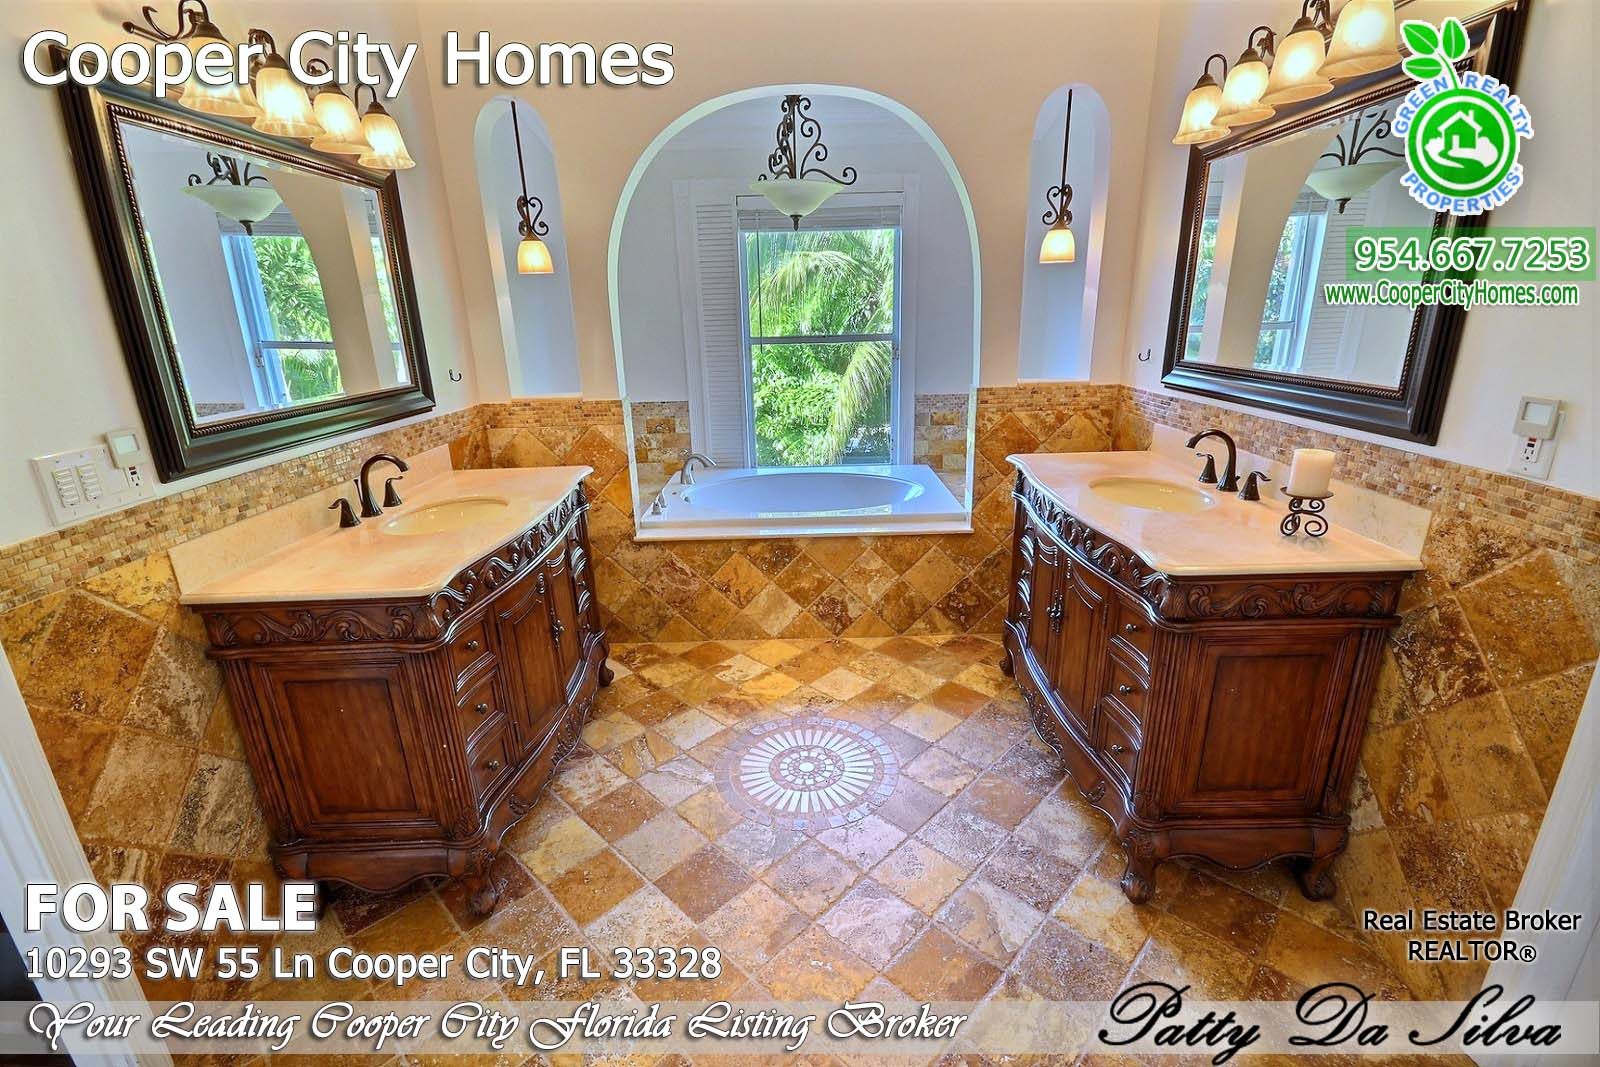 10293 - Cooper City Homes For Sale (28)